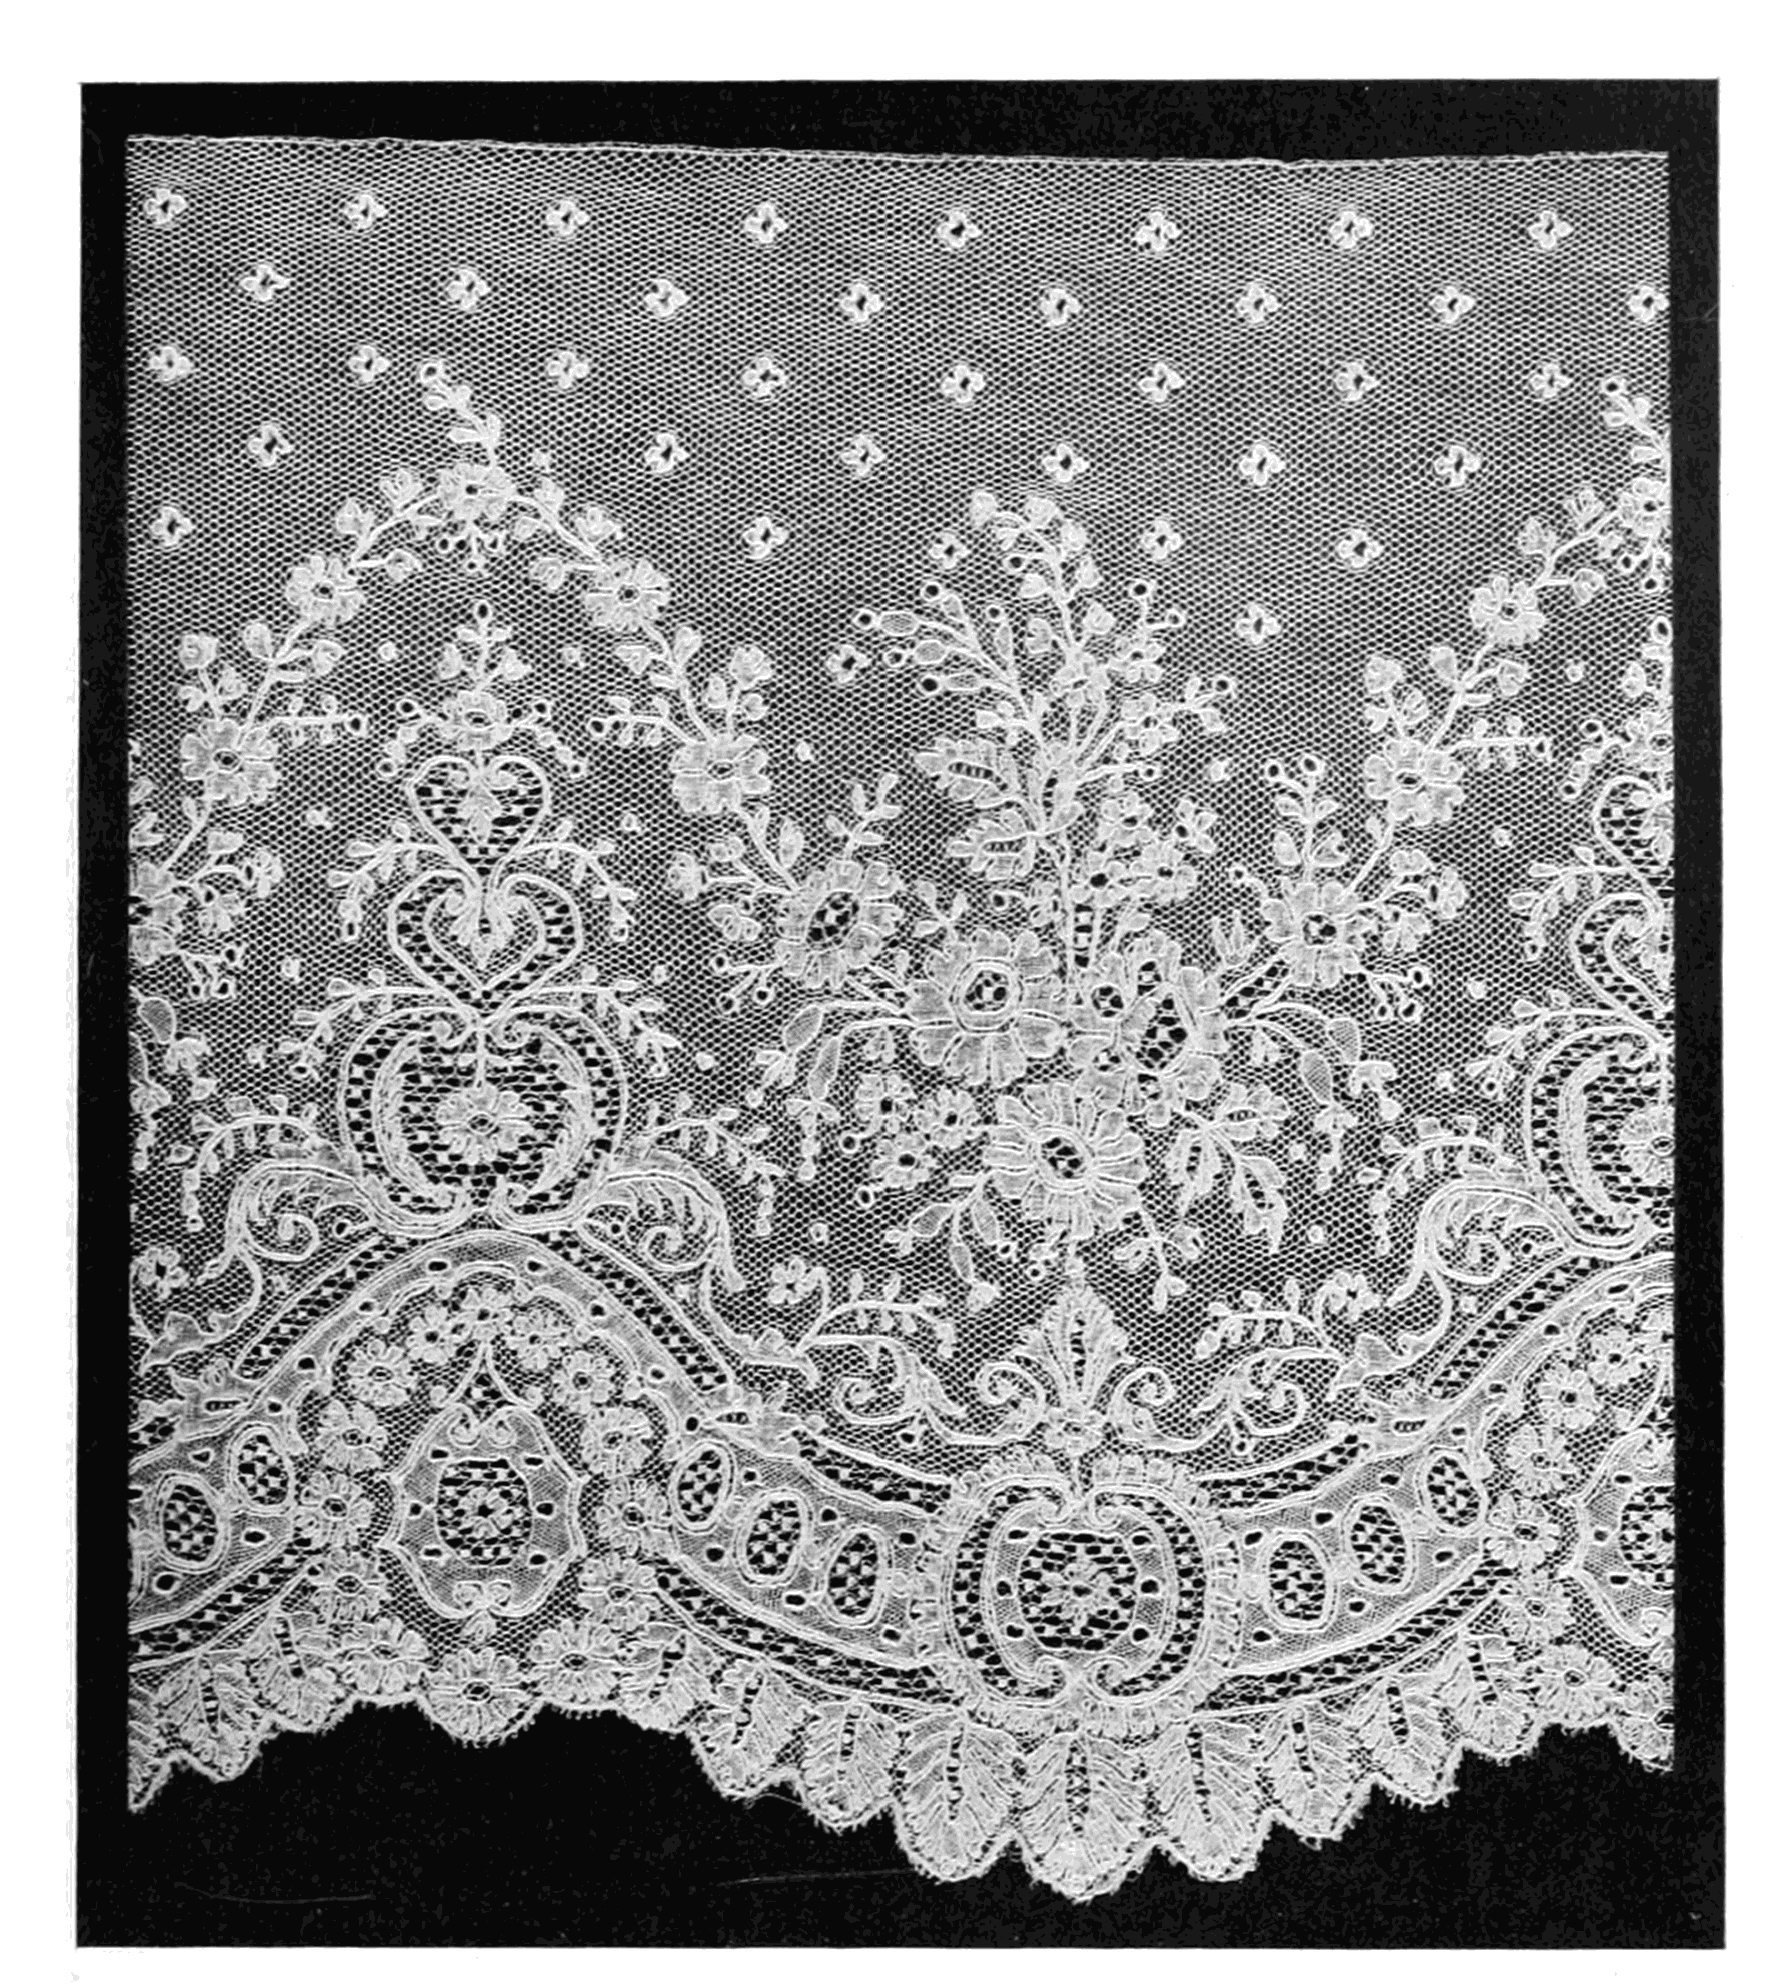 "19th century, Mechlin exclusive quality sample lace ""Lace Its Origin and History Real Mechlin"" by Samuel L. Goldenberg - Lace: Its Origin and History Retrieved from Wikimedia Commons"